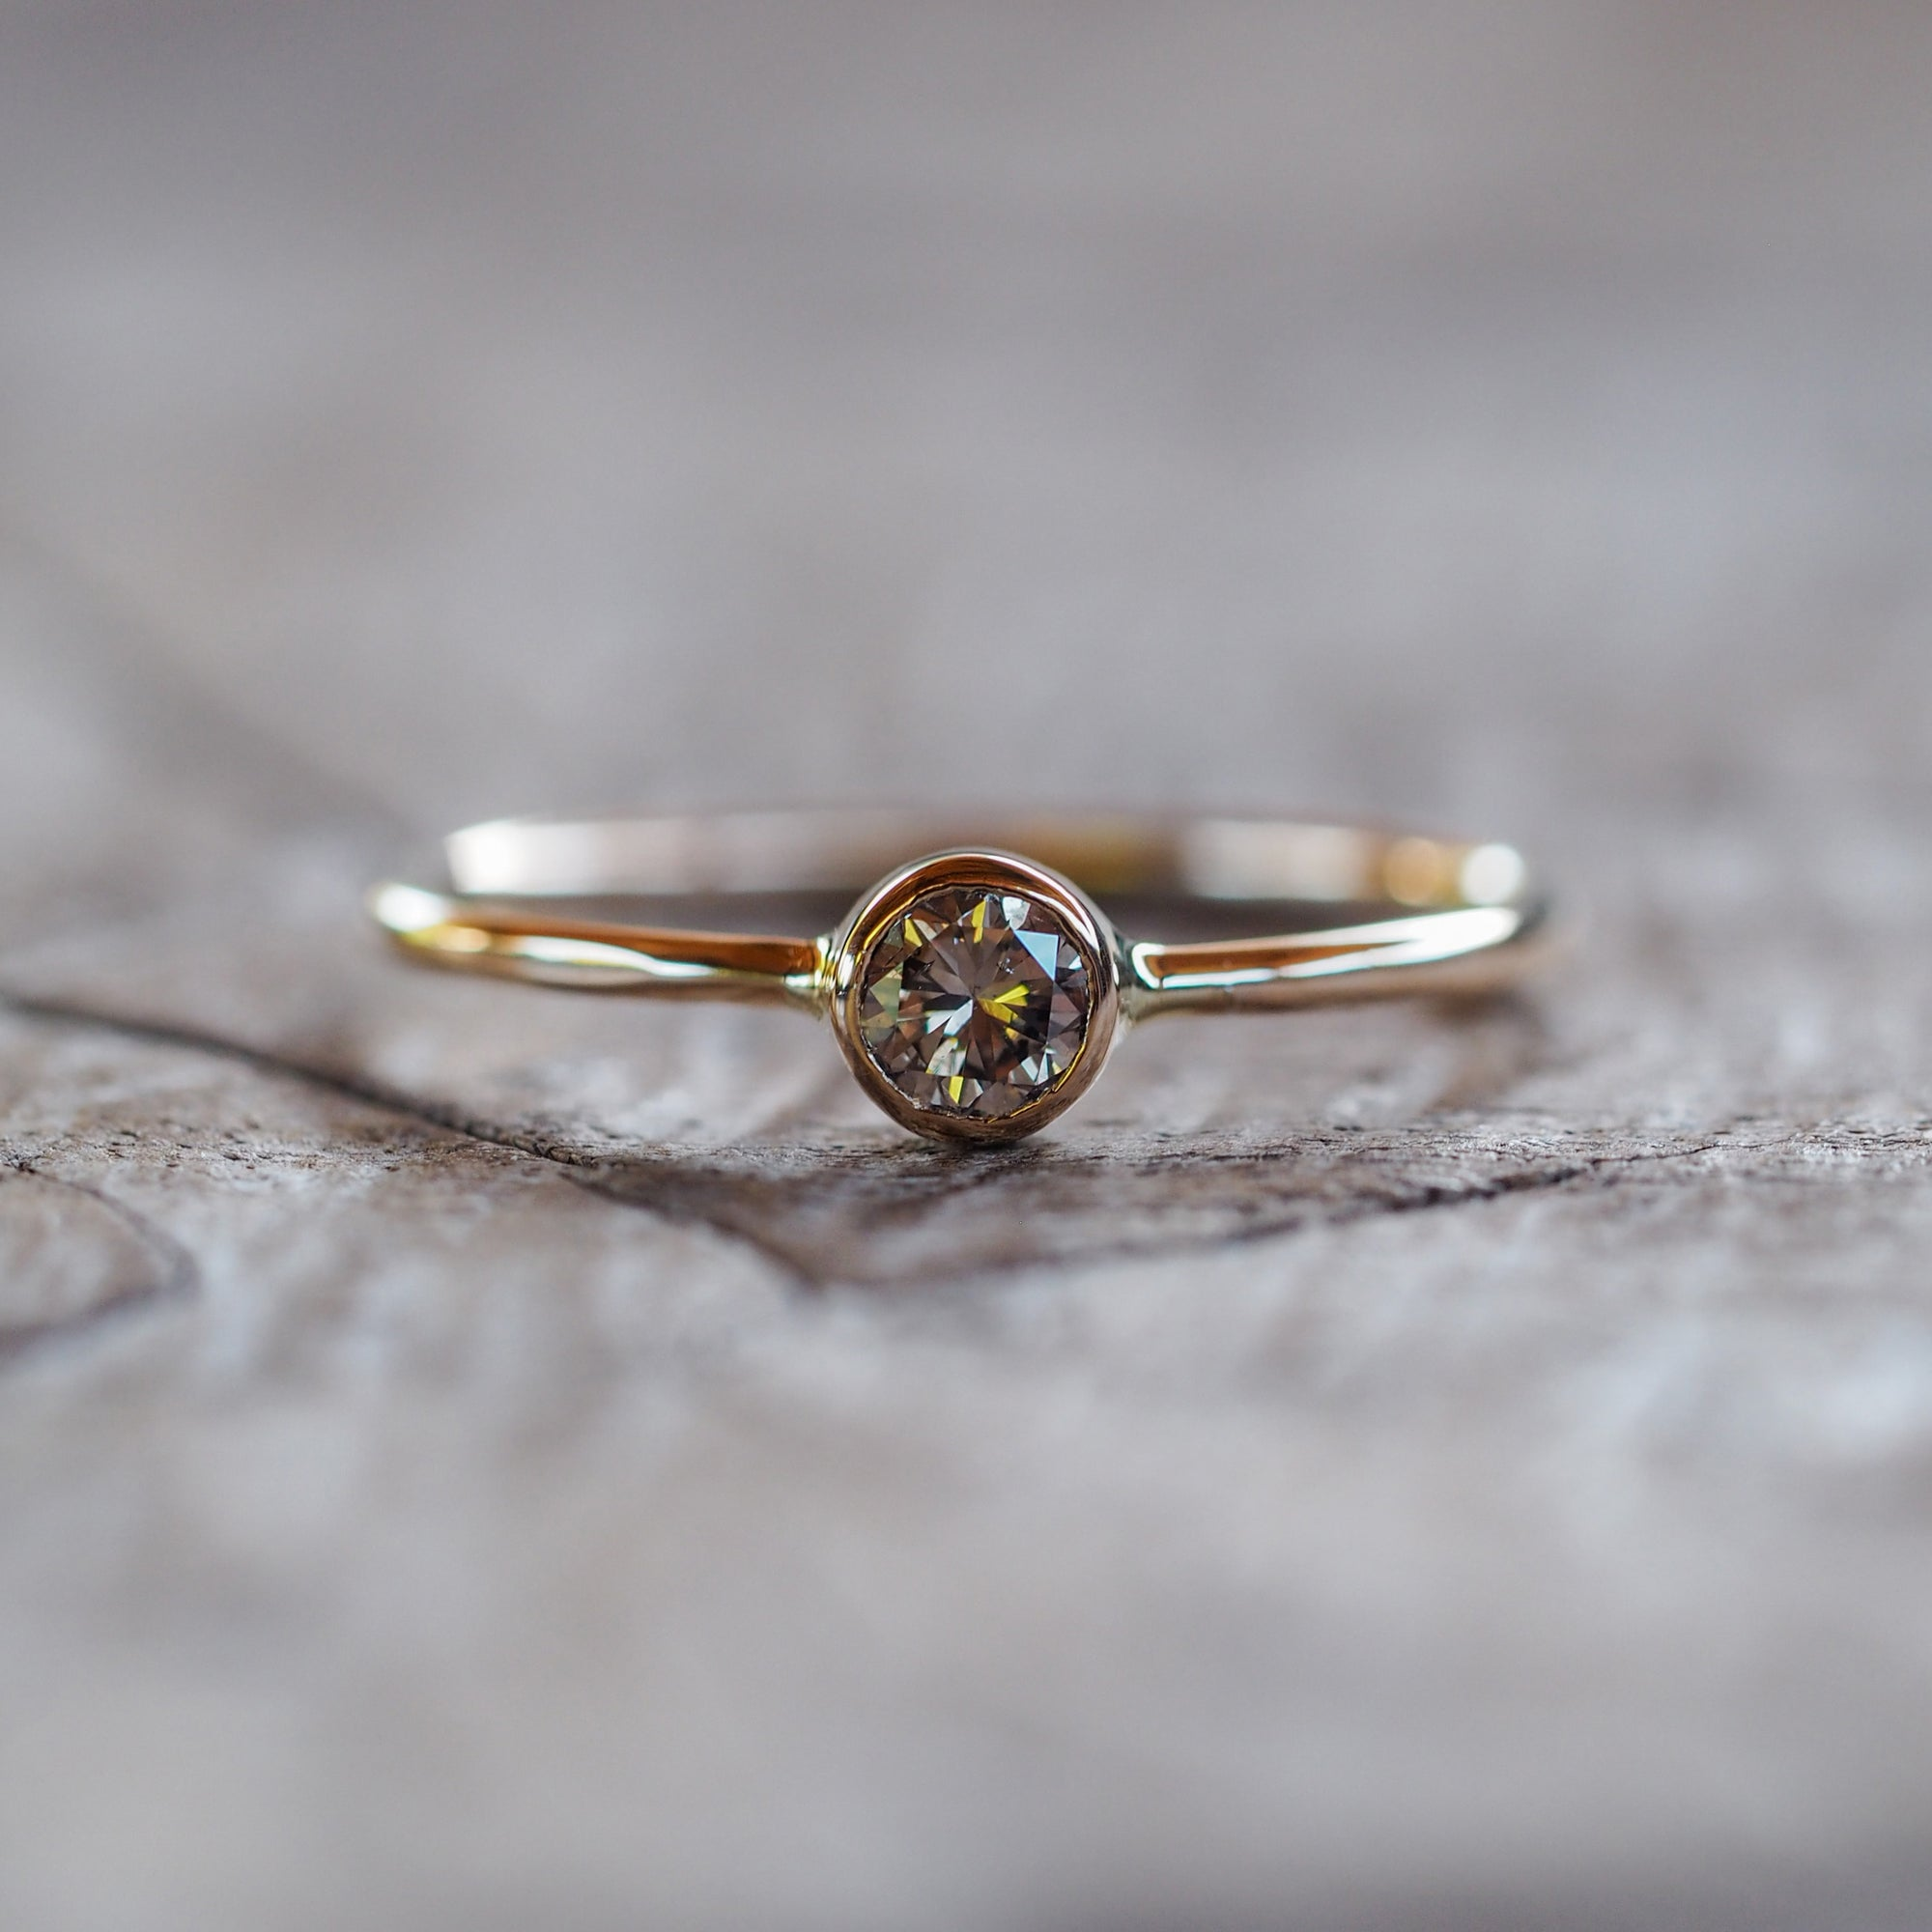 Arkansas Diamond Ring in Gold - Gardens of the Sun Jewelry